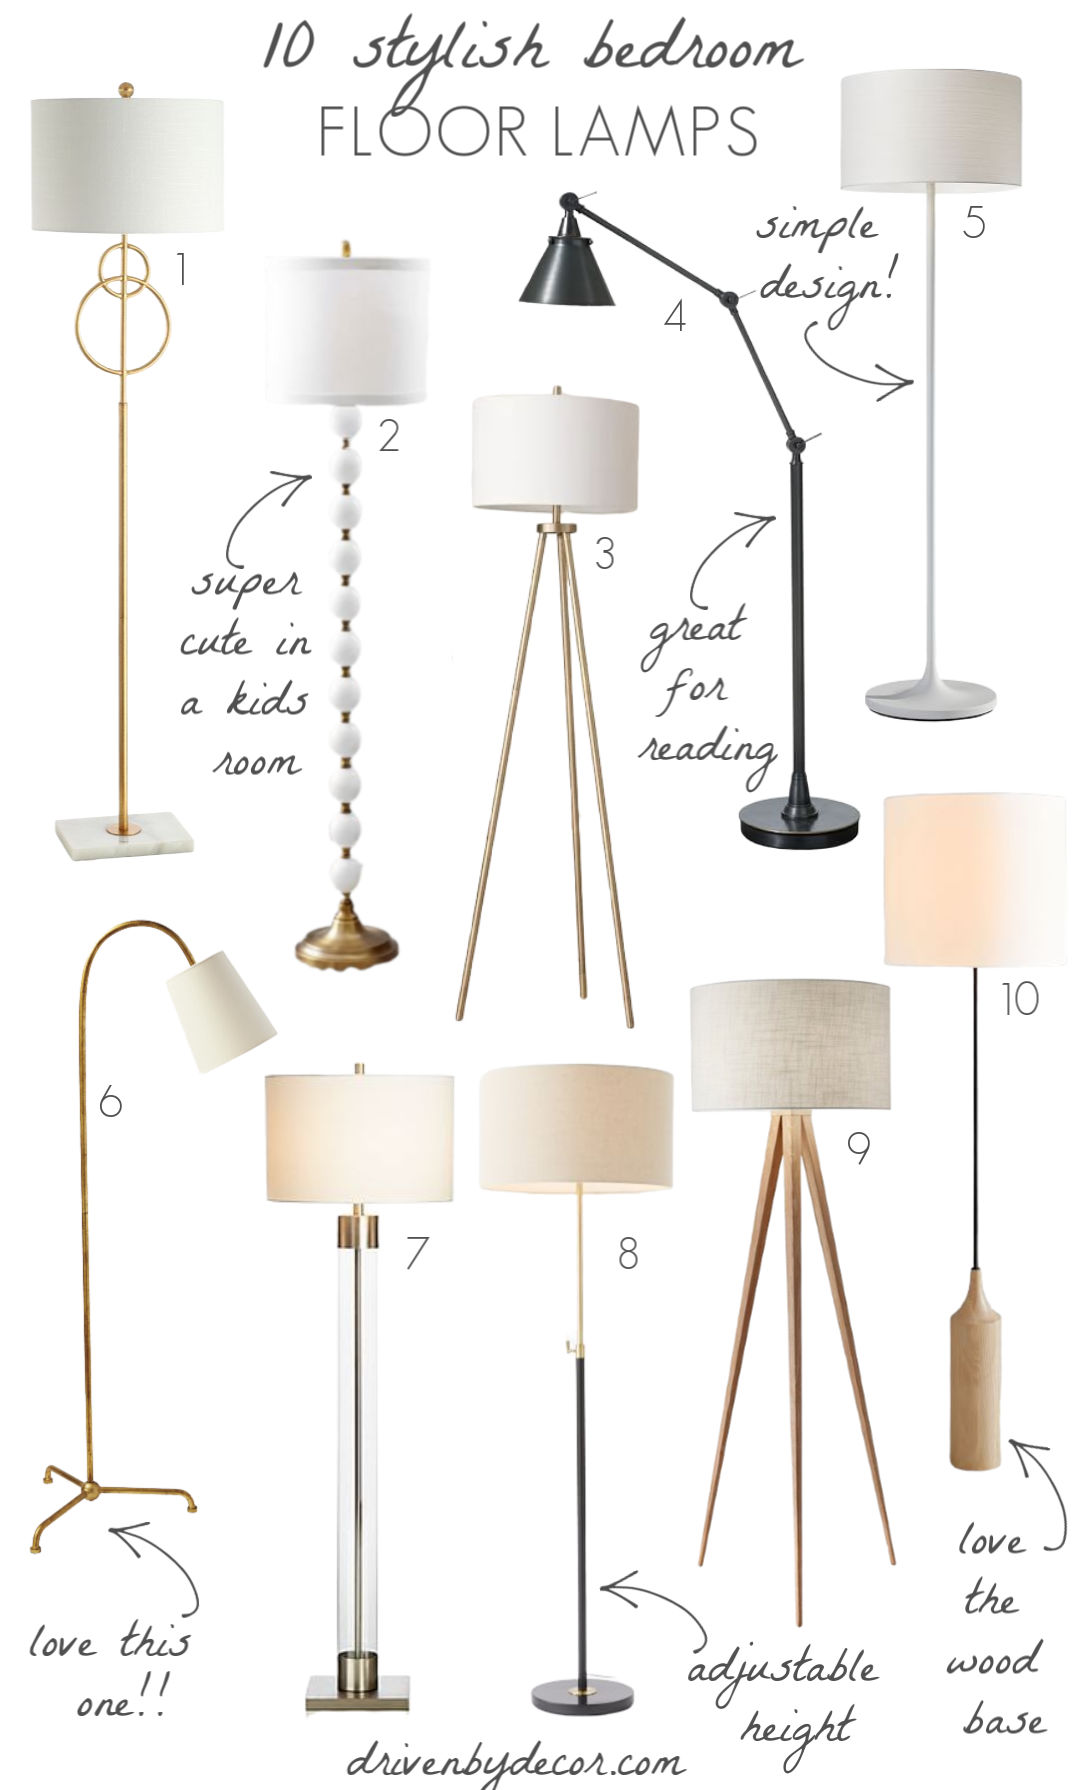 Love these floor lamps that she shared as some of her favorite bedroom light fixtures!